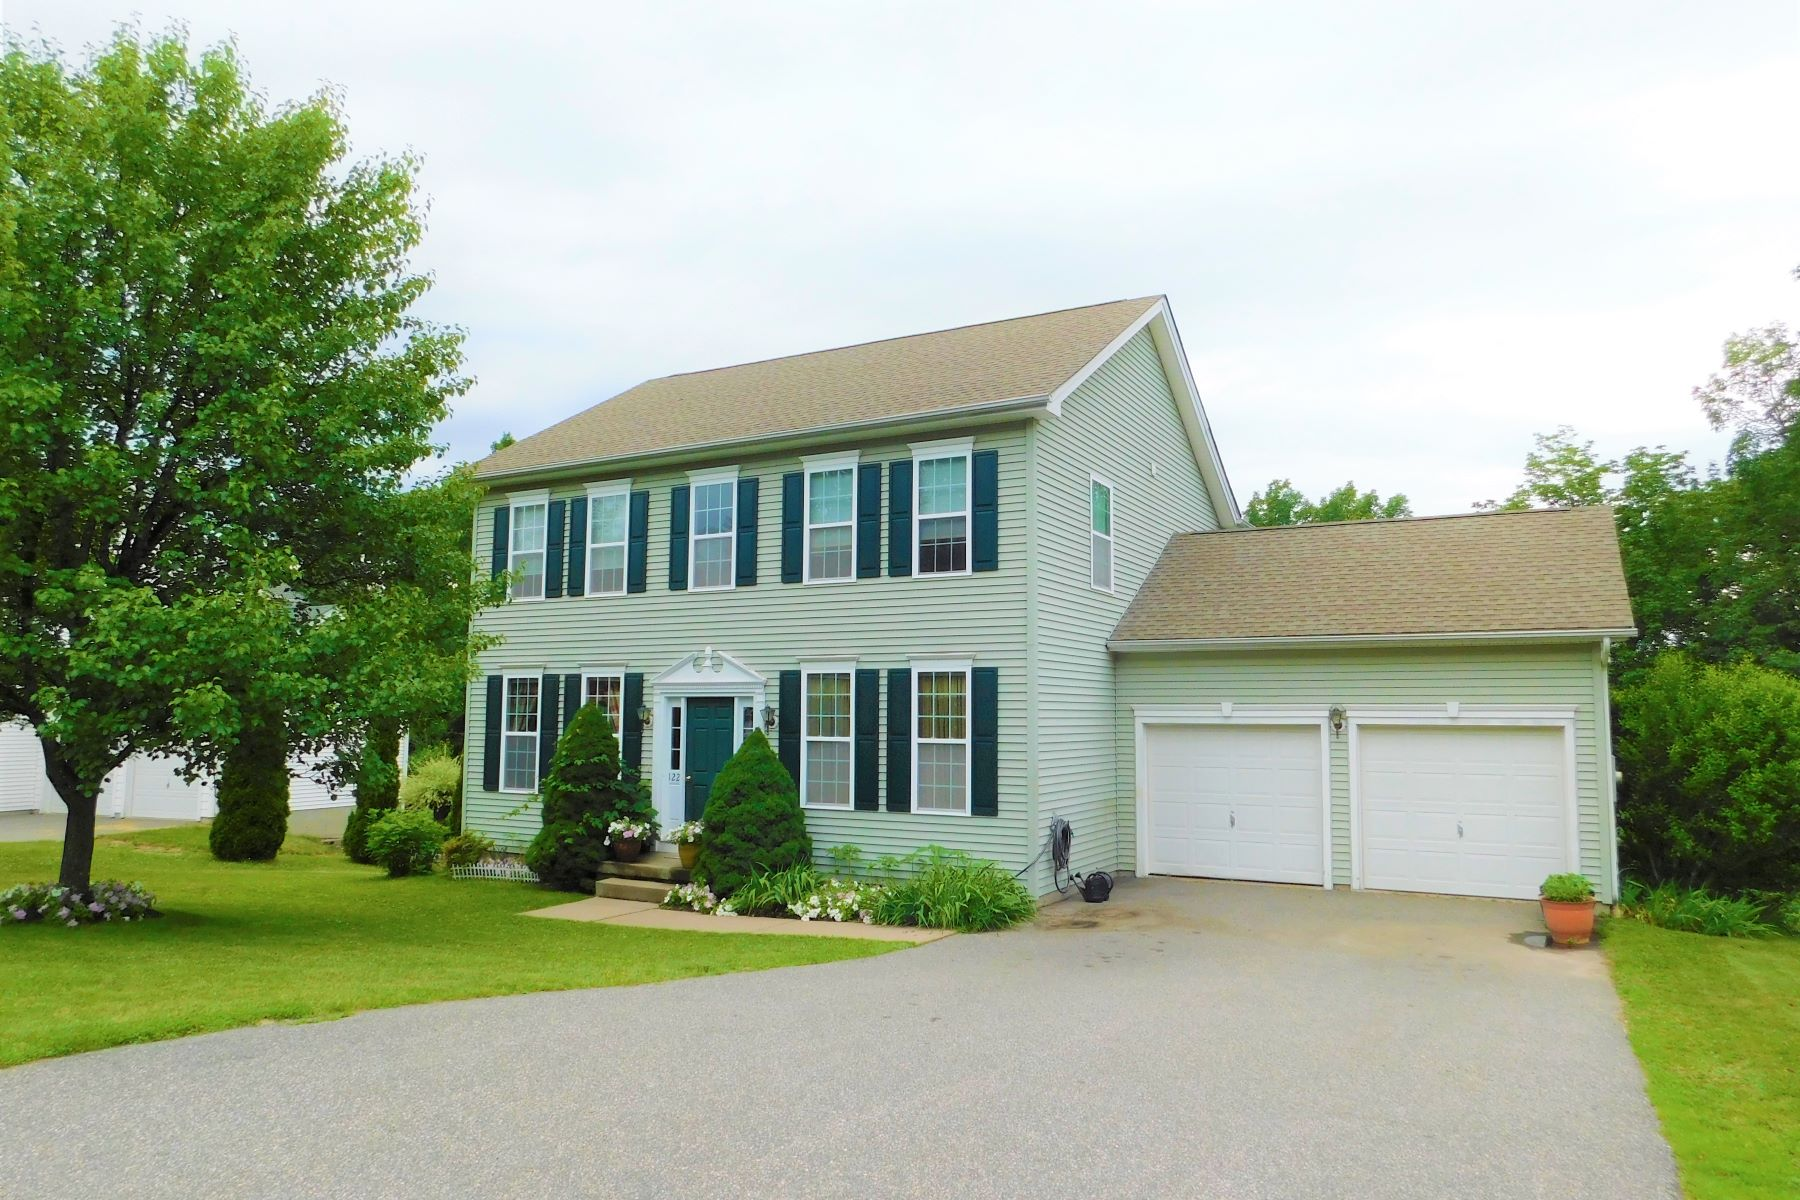 Single Family Homes for Sale at Pristine Colonial 122 Penny Ln Torrington, Connecticut 06790 United States